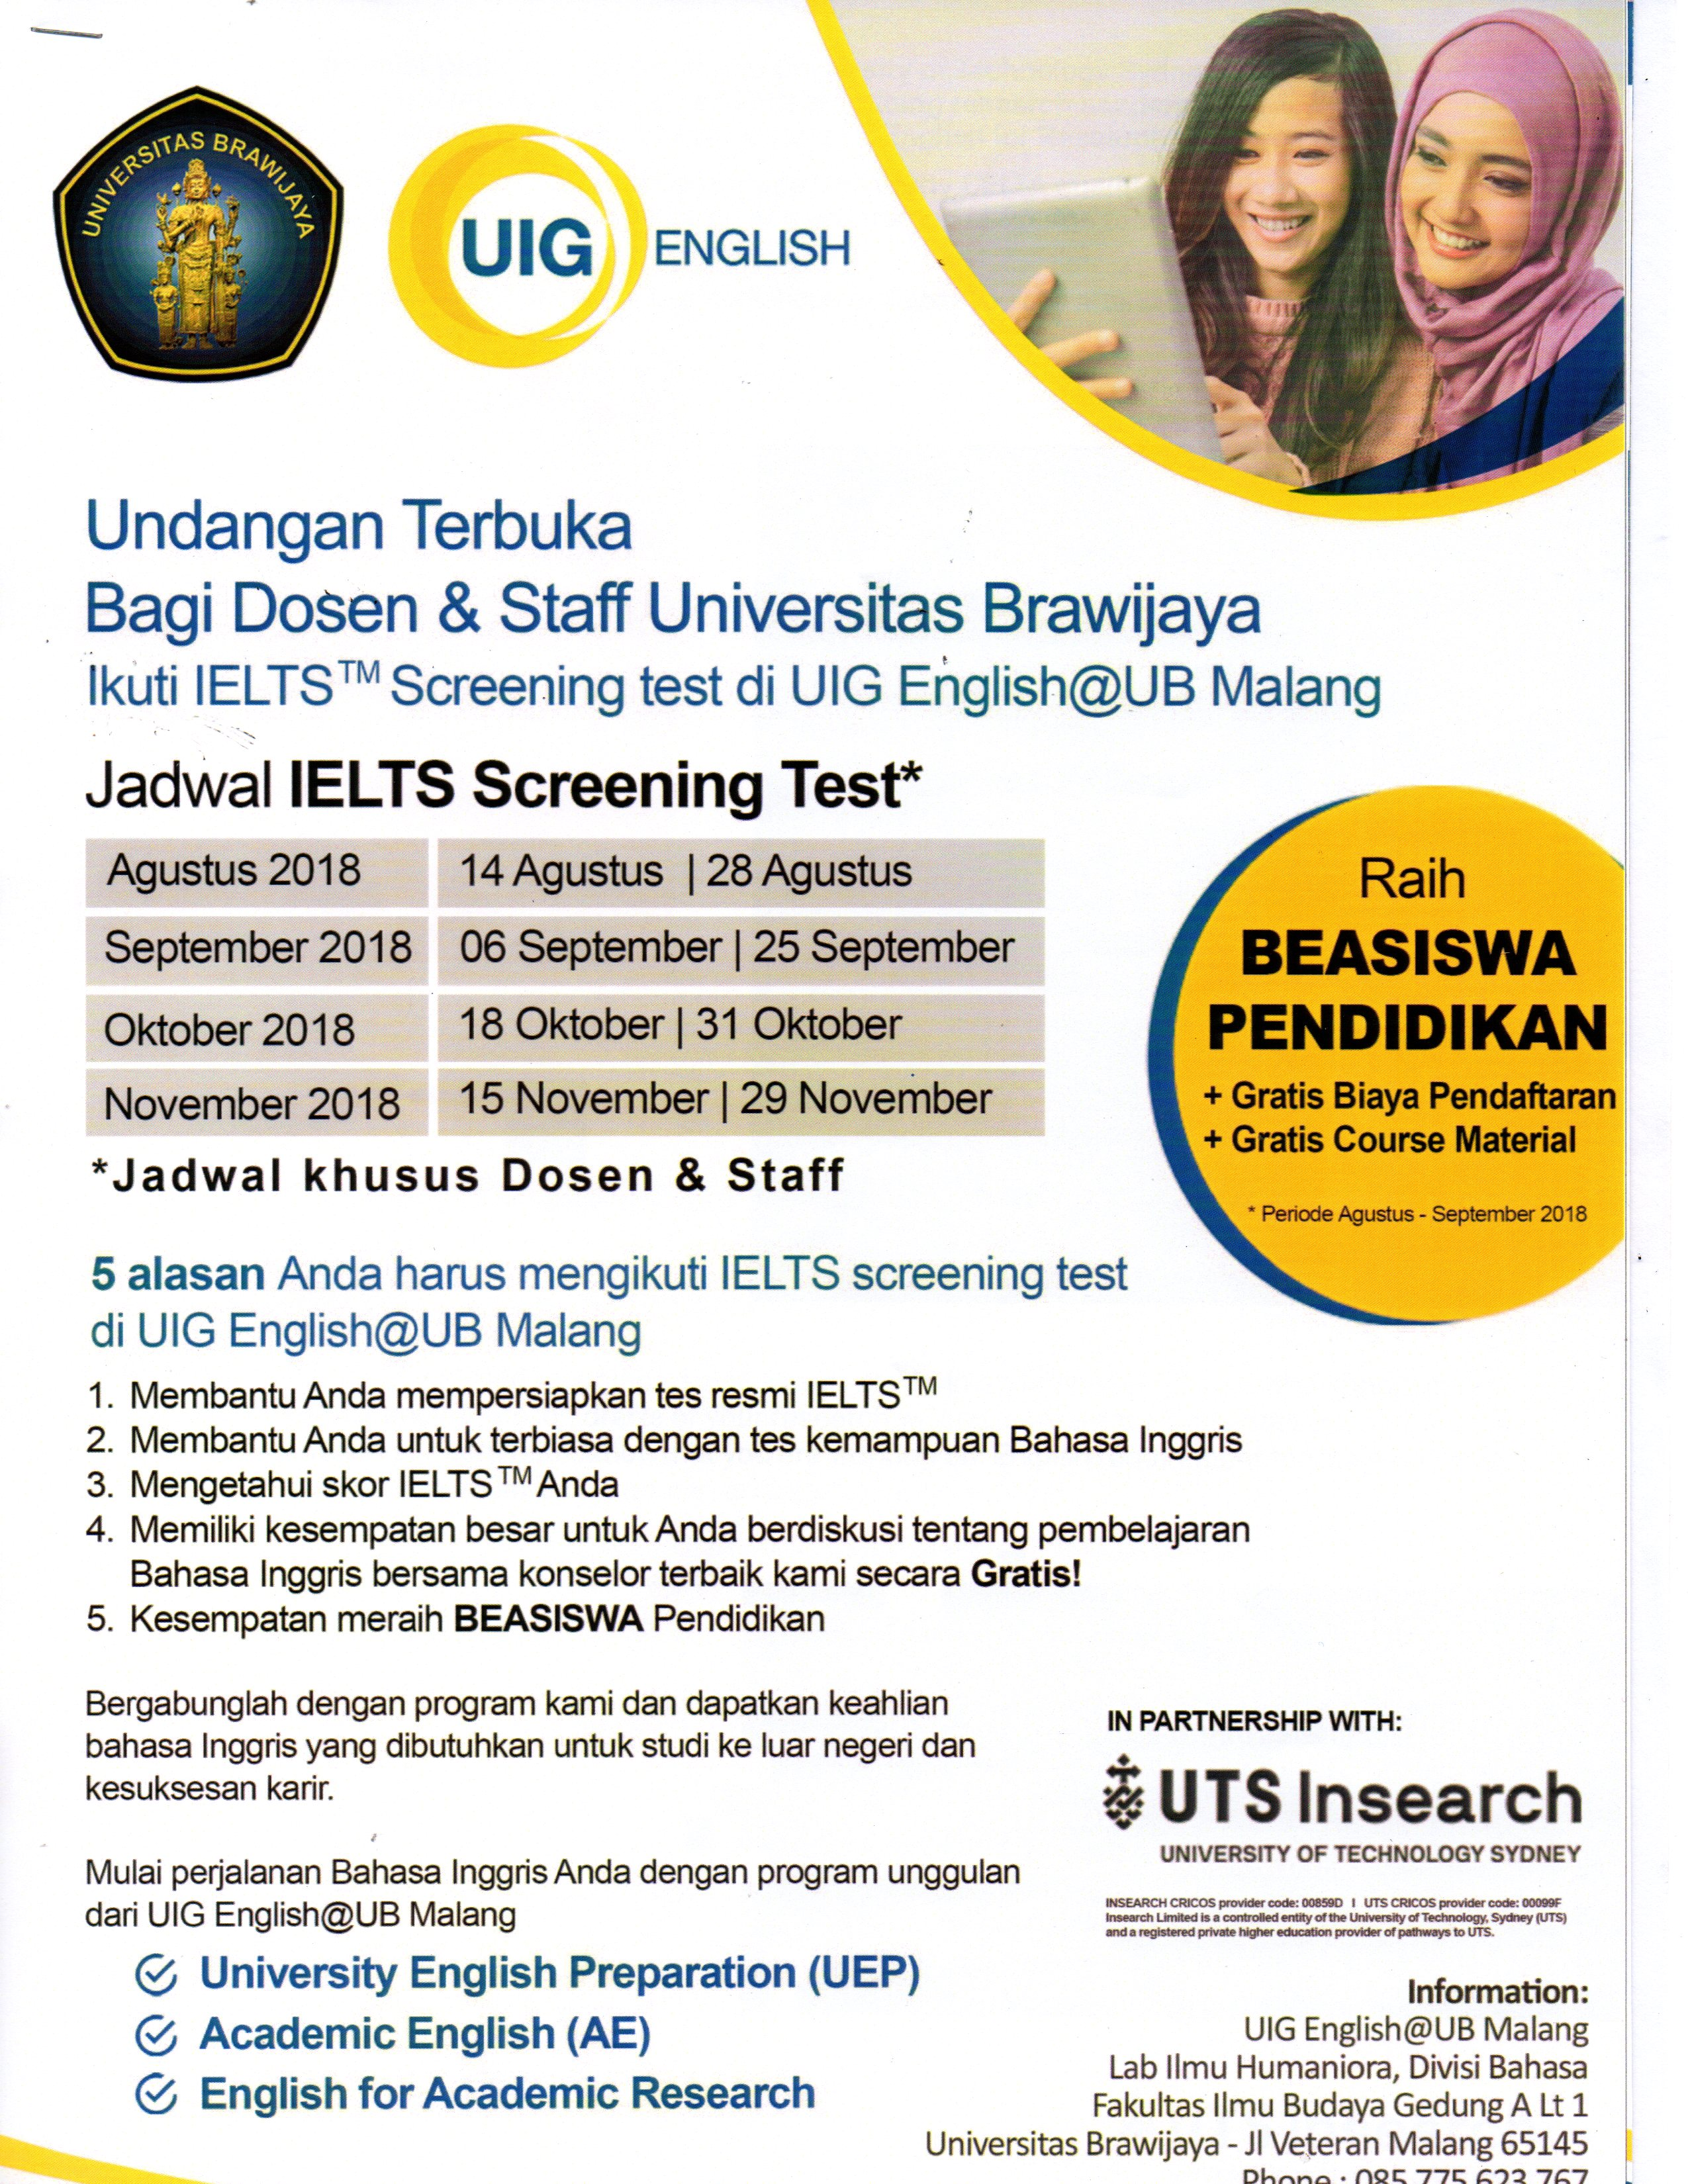 Invitation for IELTS Screening Test by UIG Brawijaya University